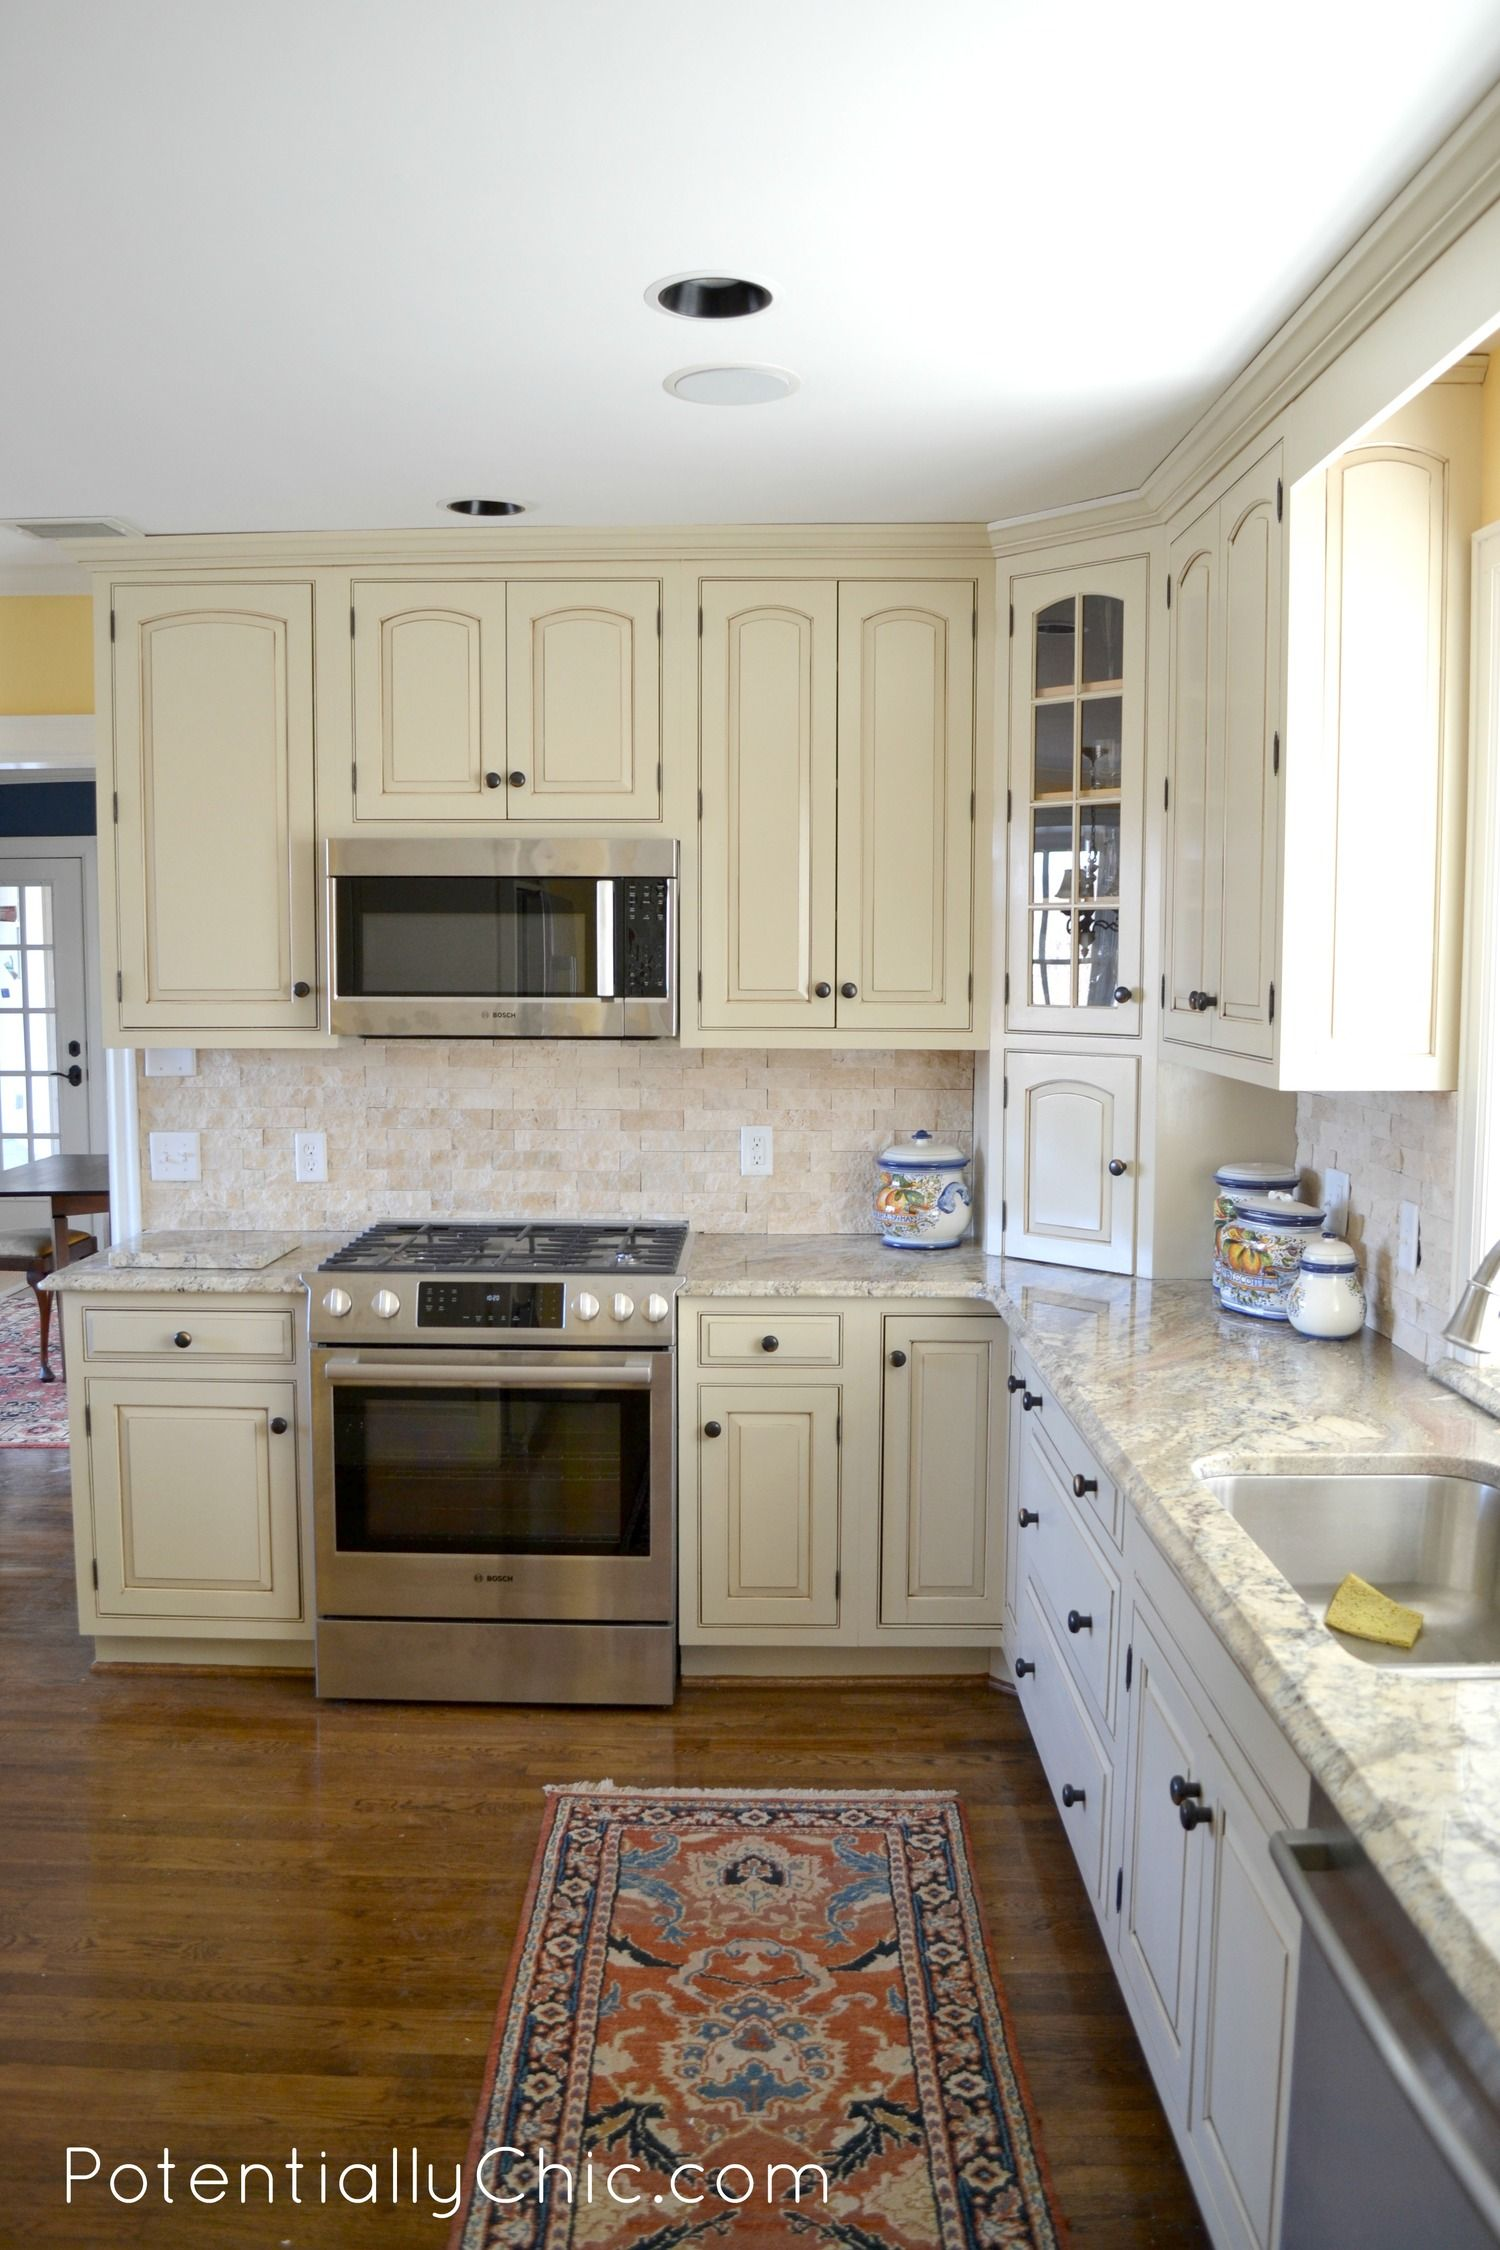 Kitchen:General Finishes Milk Paint Kitchen Cabinets With Whites Kitchen  Bath Upcycled Tara Potentially Chic Linen Milk Paint Van Dyke Brown Glaze  Effects ...